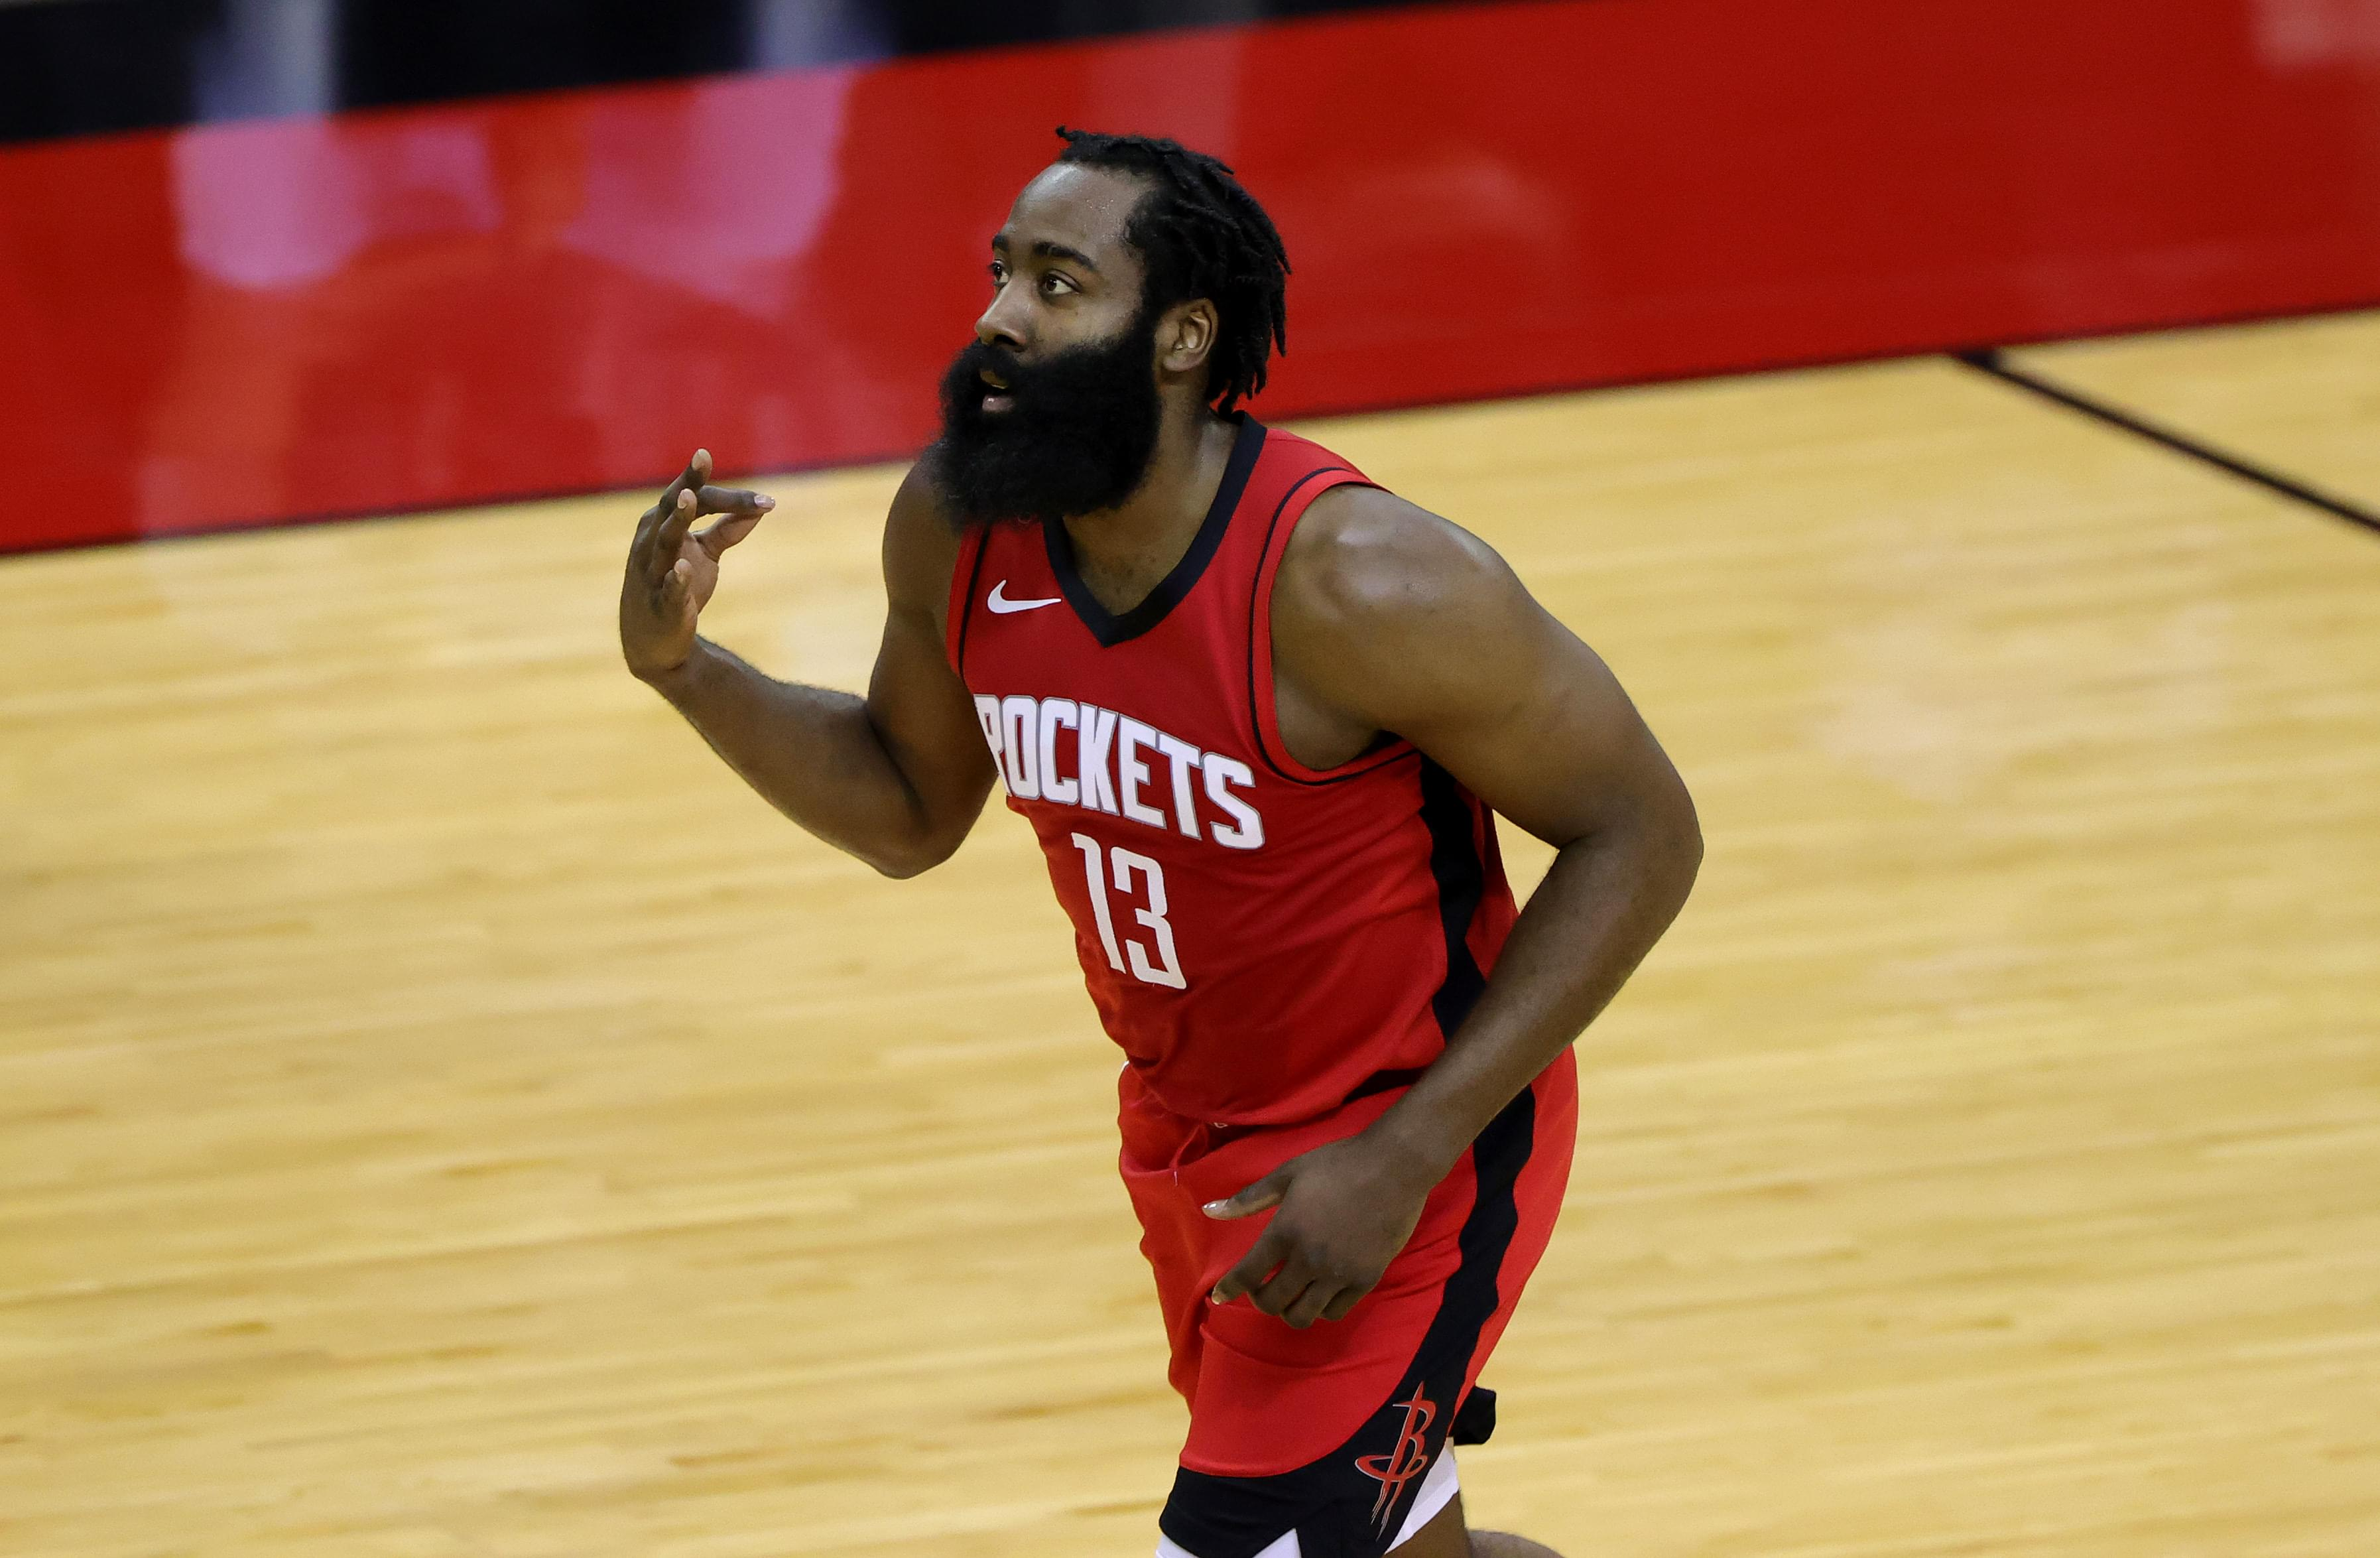 Nets reportedly trade for Harden in blockbuster deal, DeMarcus Cousins slams him for being 'disrespectful'